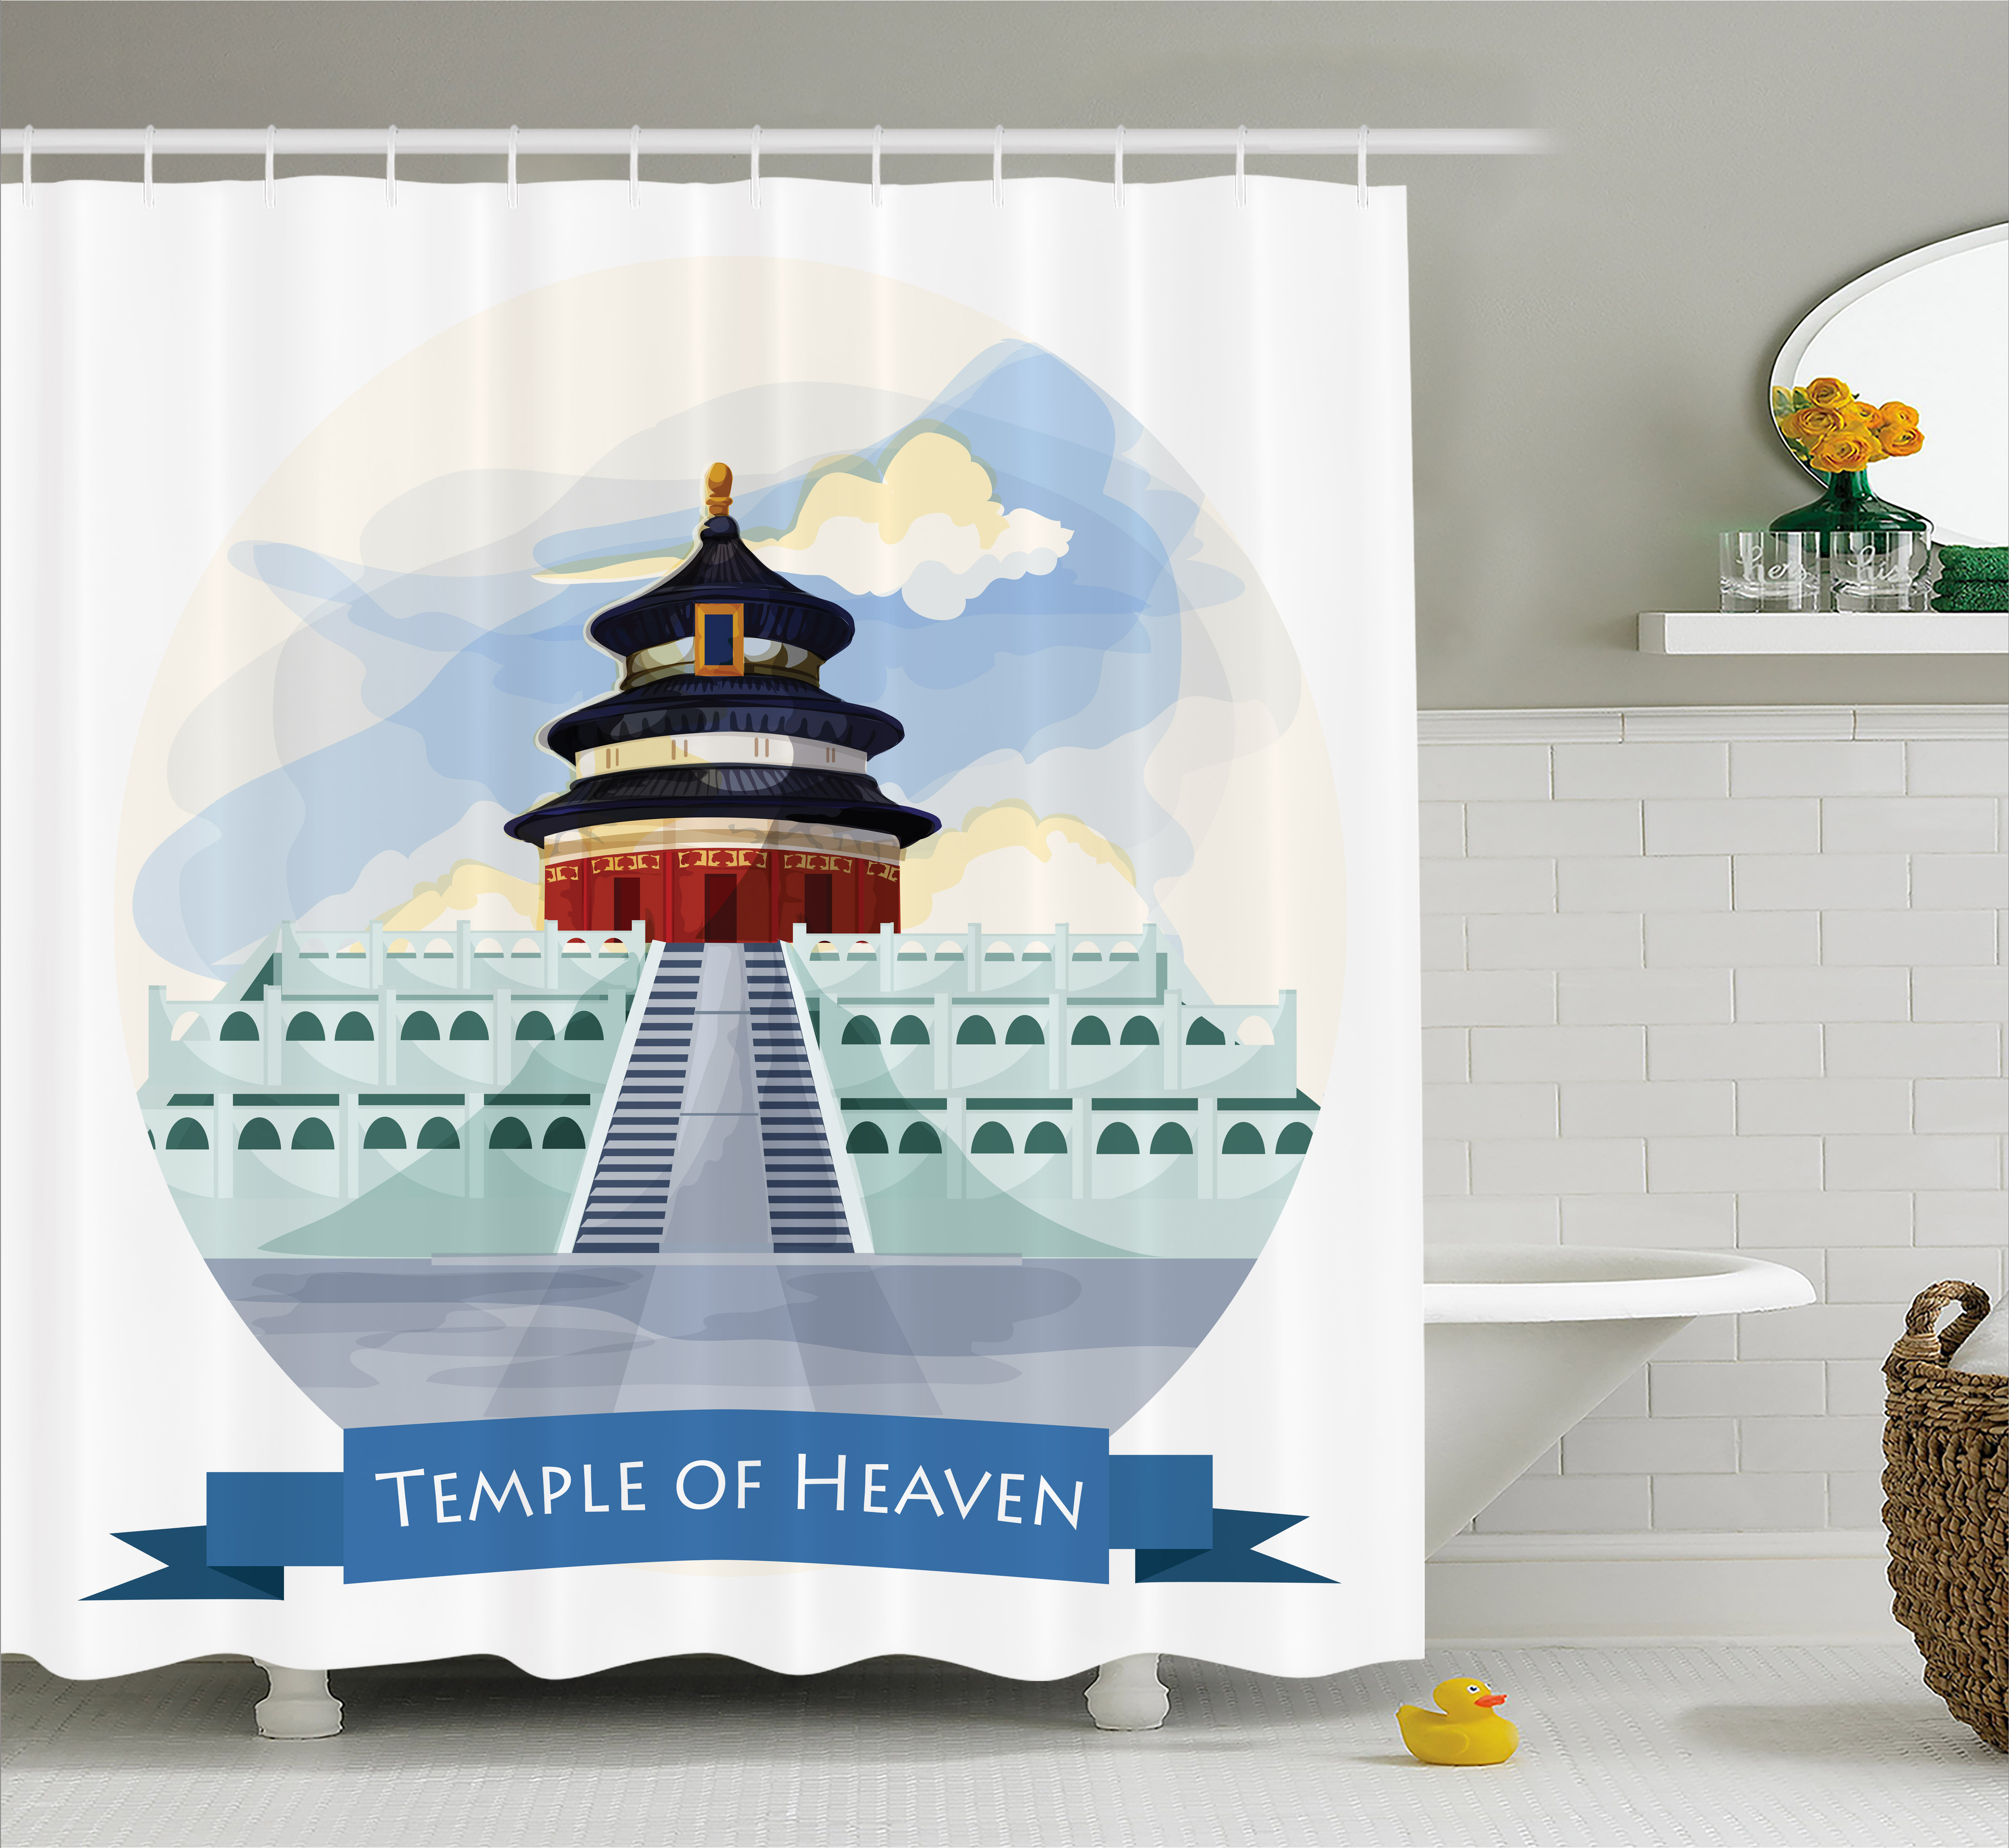 Ancient China Shower Curtain, Illustrated Temple of Heaven in Beijing Historical Landmark Icon Monastery, Fabric Bathroom Set with Hooks, 69W X 75L Inches Long, Multicolor, by Ambesonne